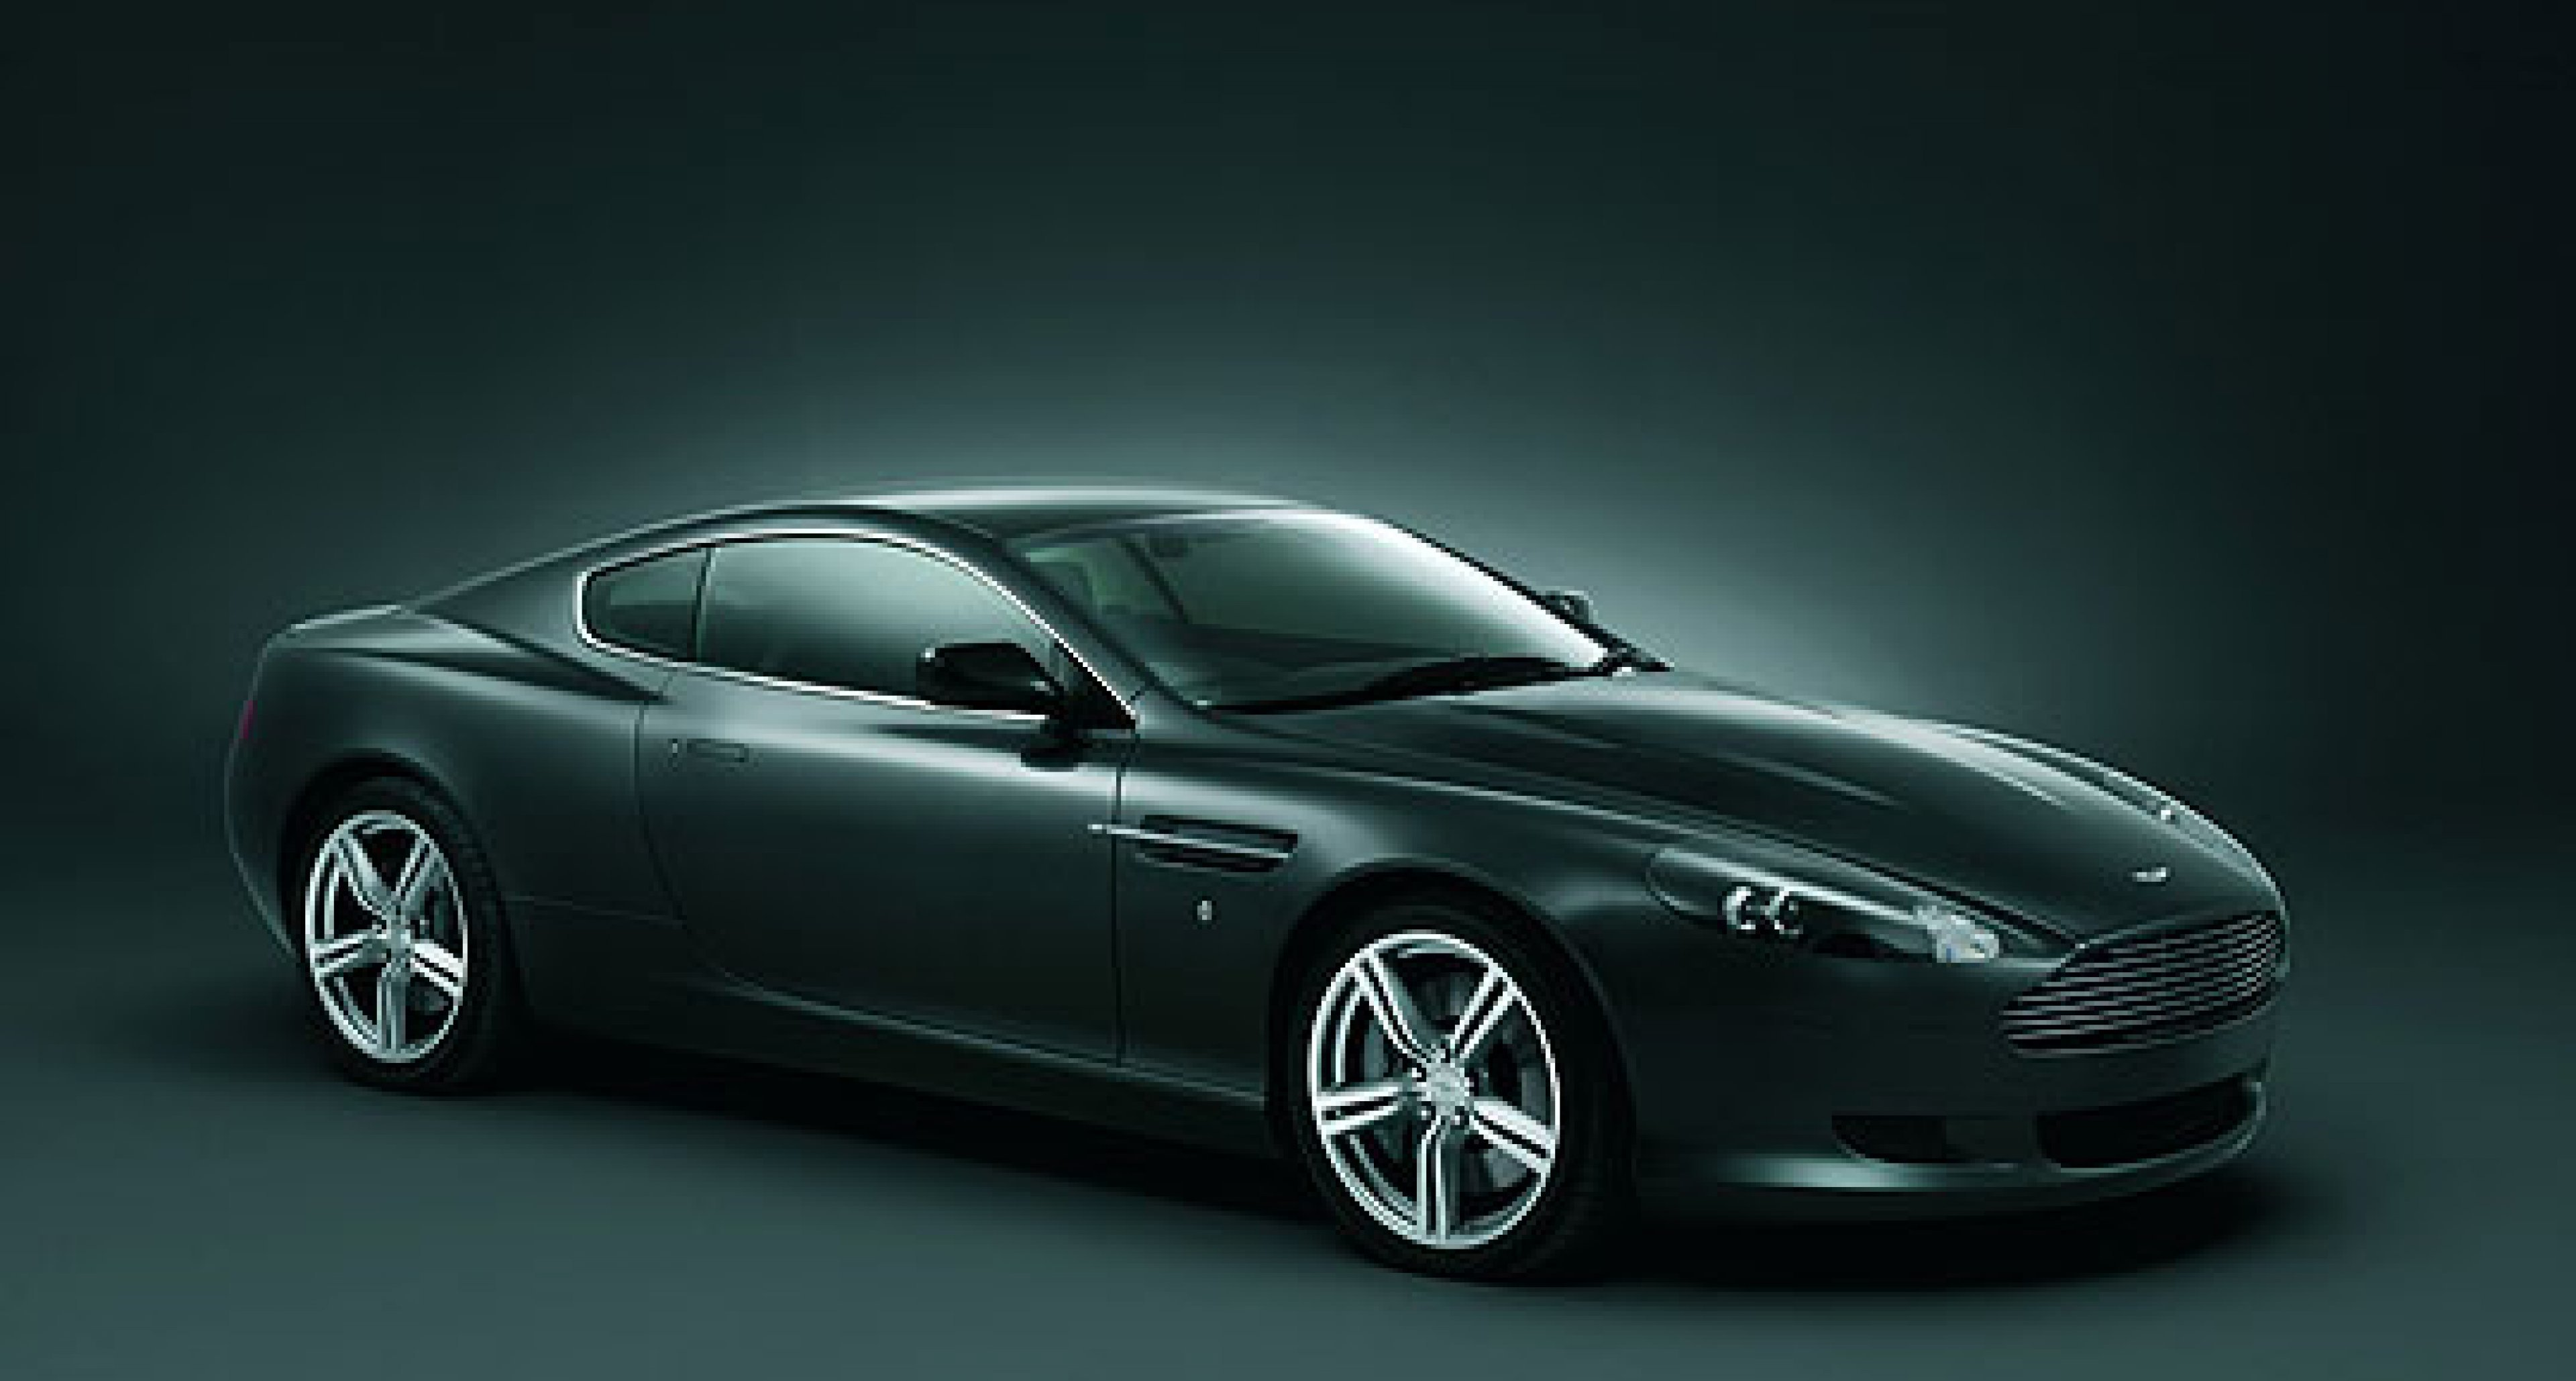 Aston Martin DB9 Coupe goes sporty